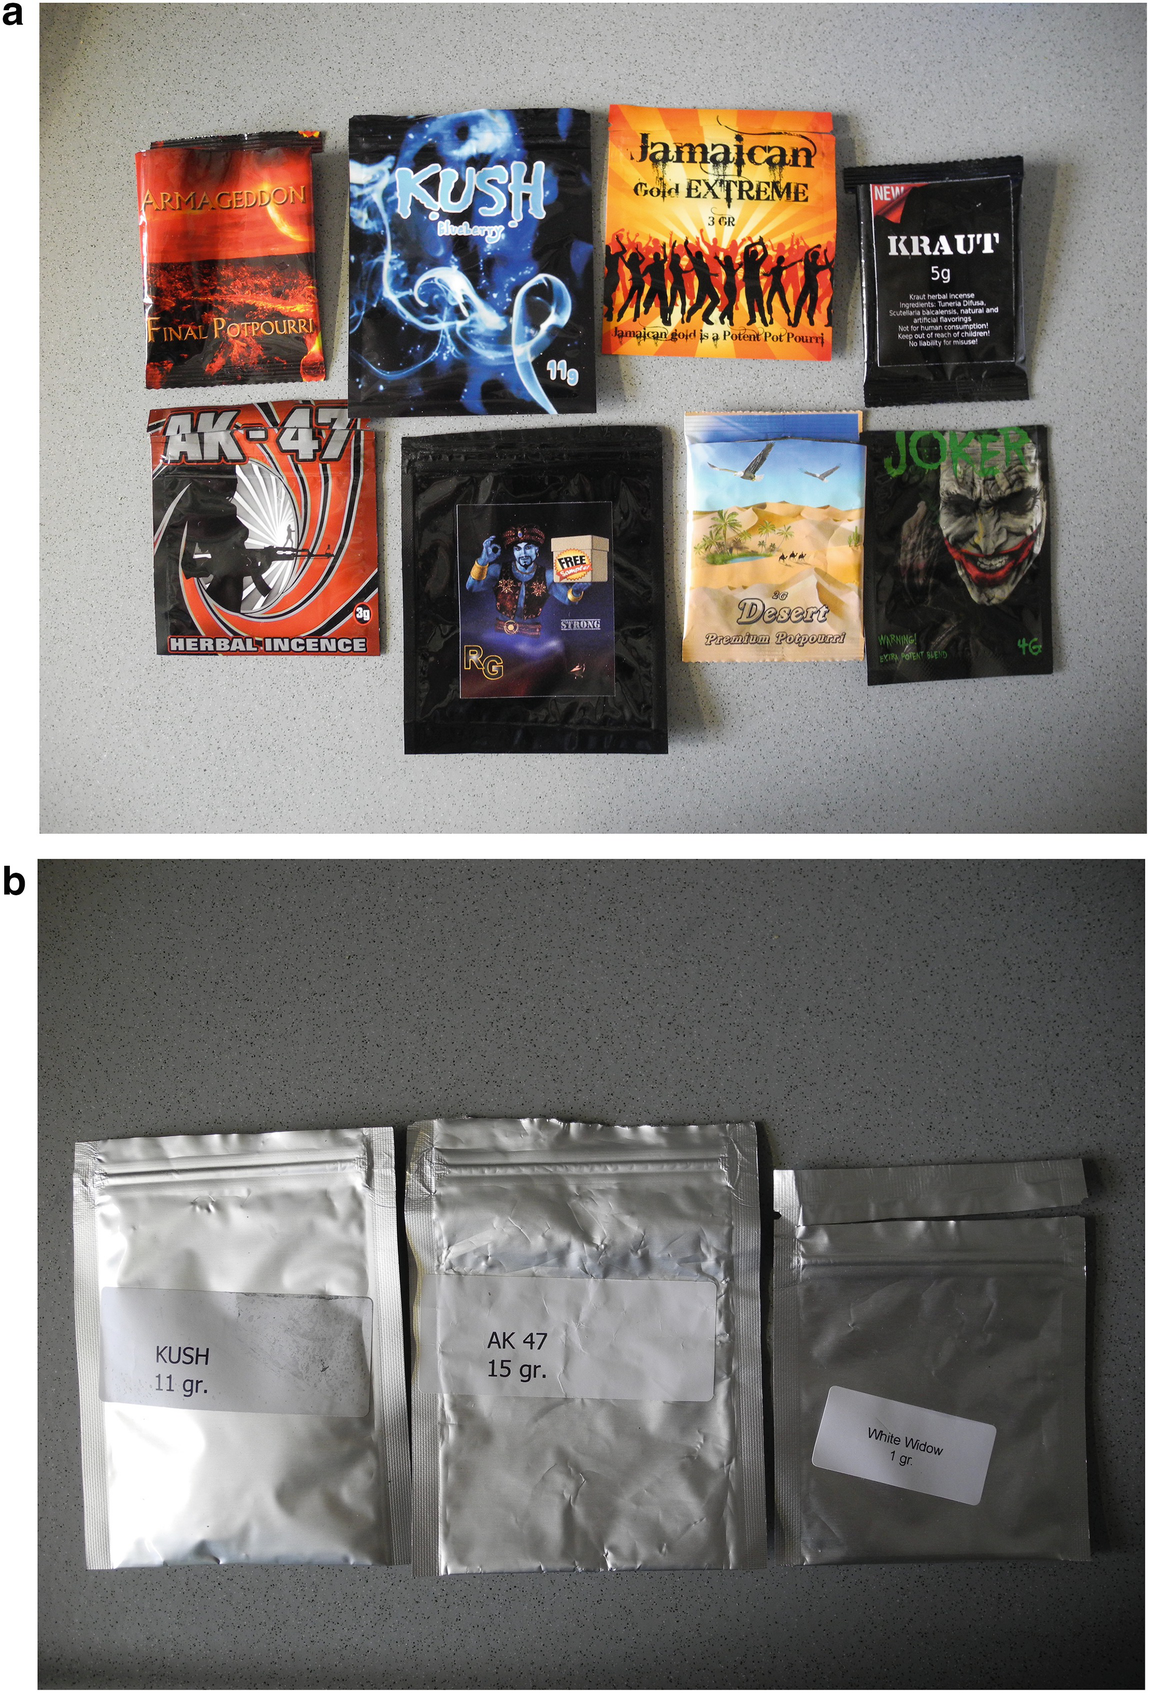 Responding to New Psychoactive Substances in the European Union